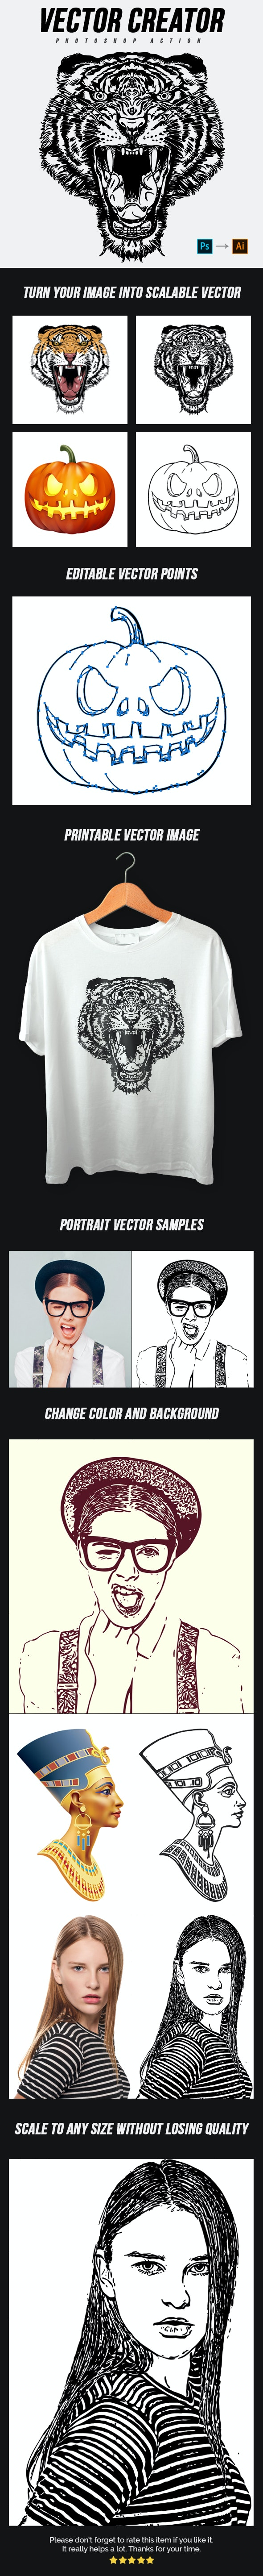 Vector Creator Photoshop Action - Photo Effects Actions